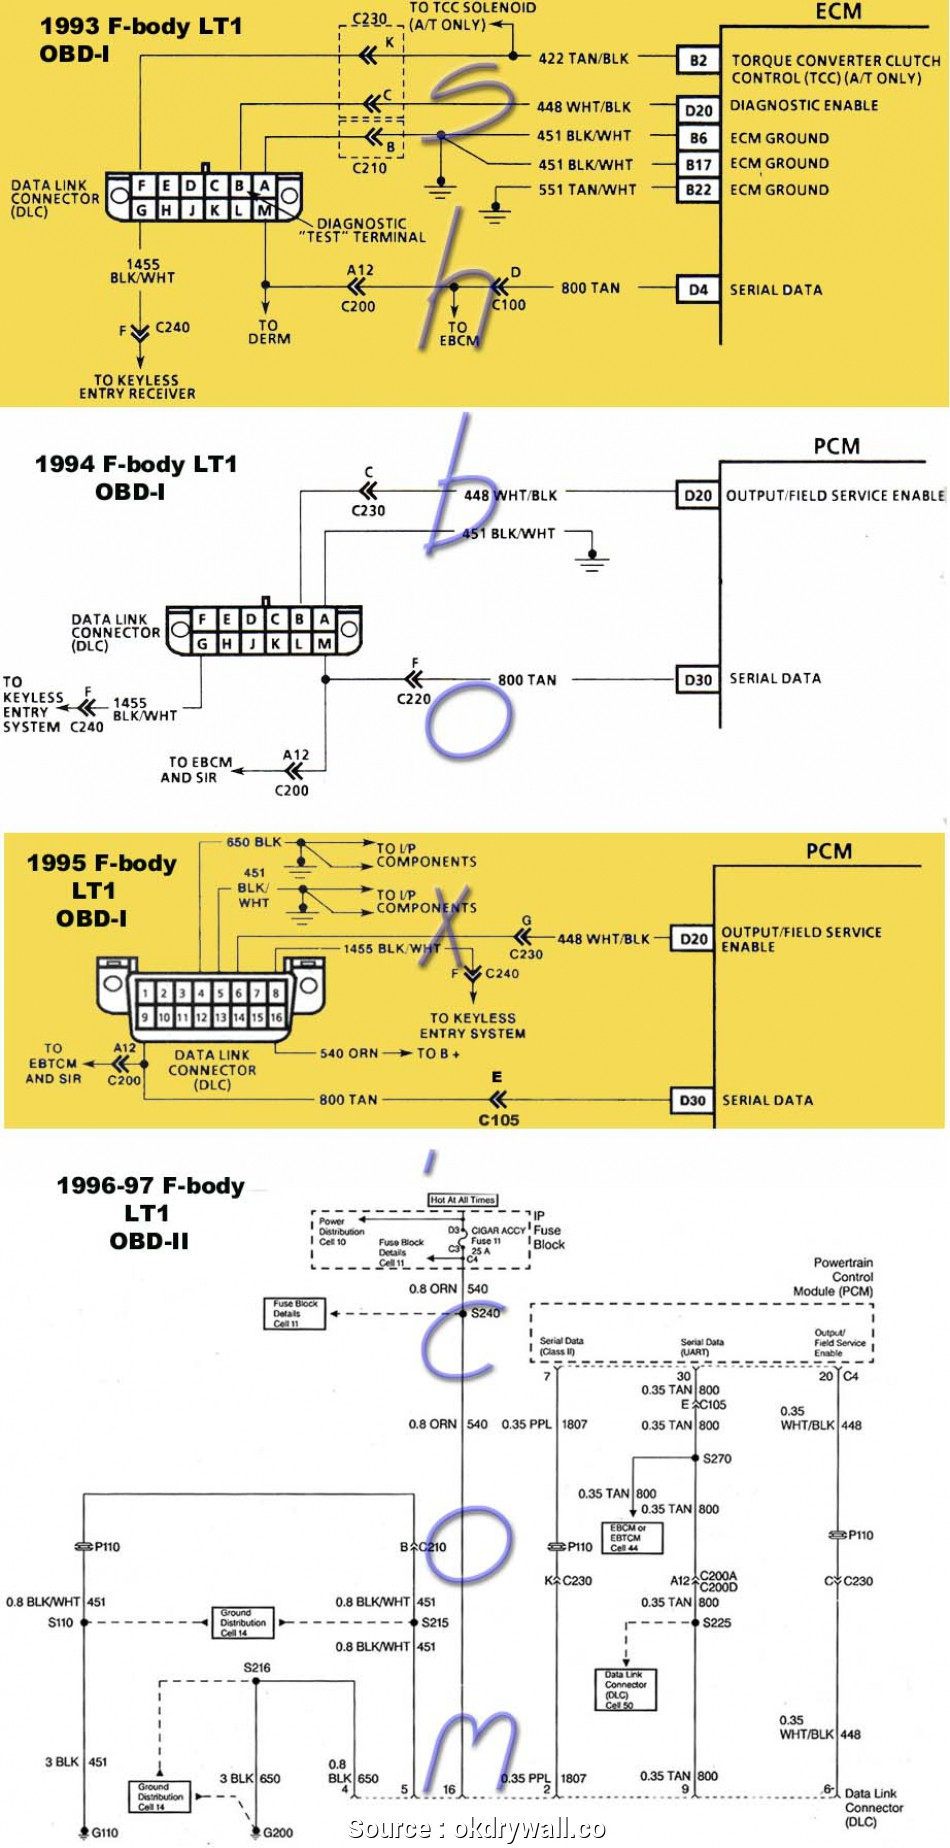 Obd2 To Usb Cable Wiring Diagram | Best Wiring Library - Usb To Obd2 Cable Wiring Diagram